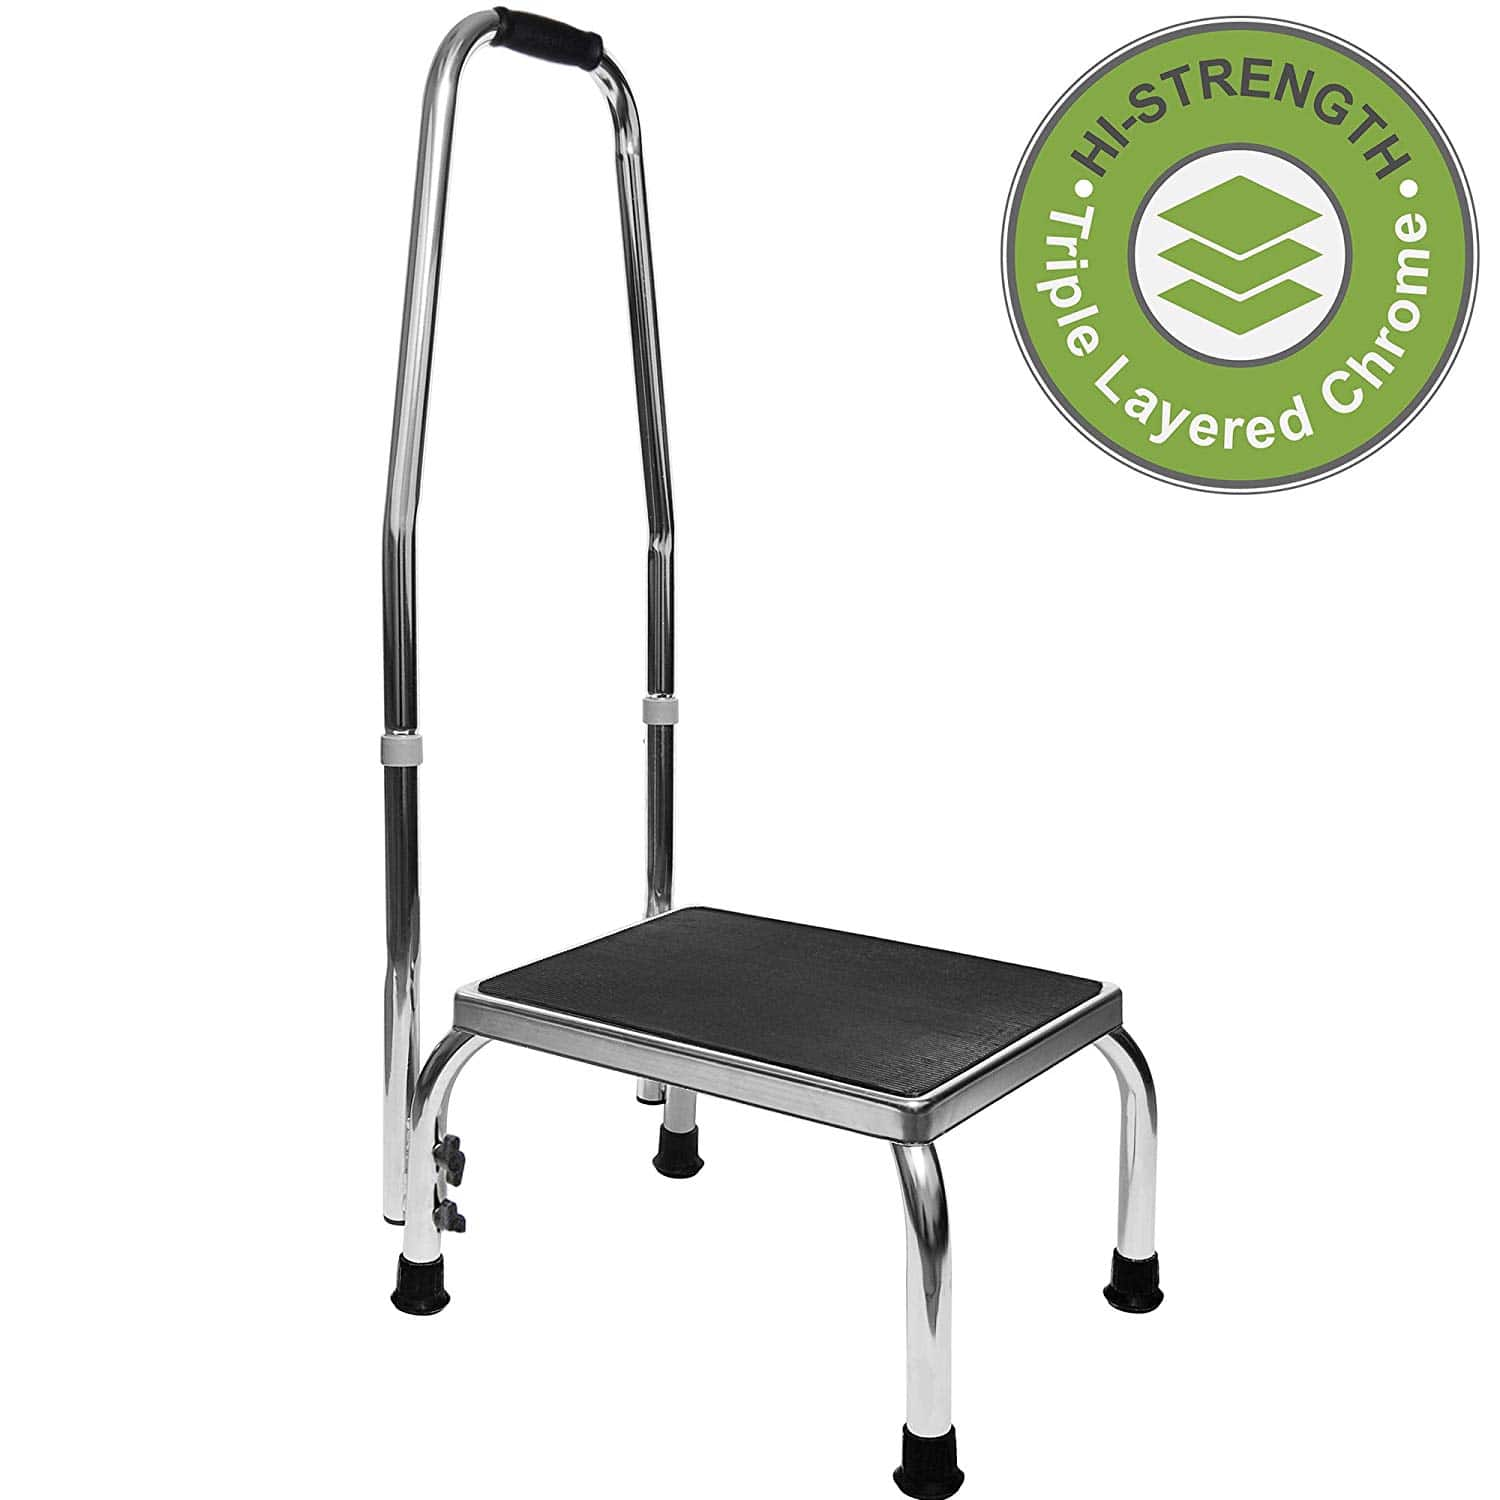 Vaunn Medical Foot Step Stool with Handle Image